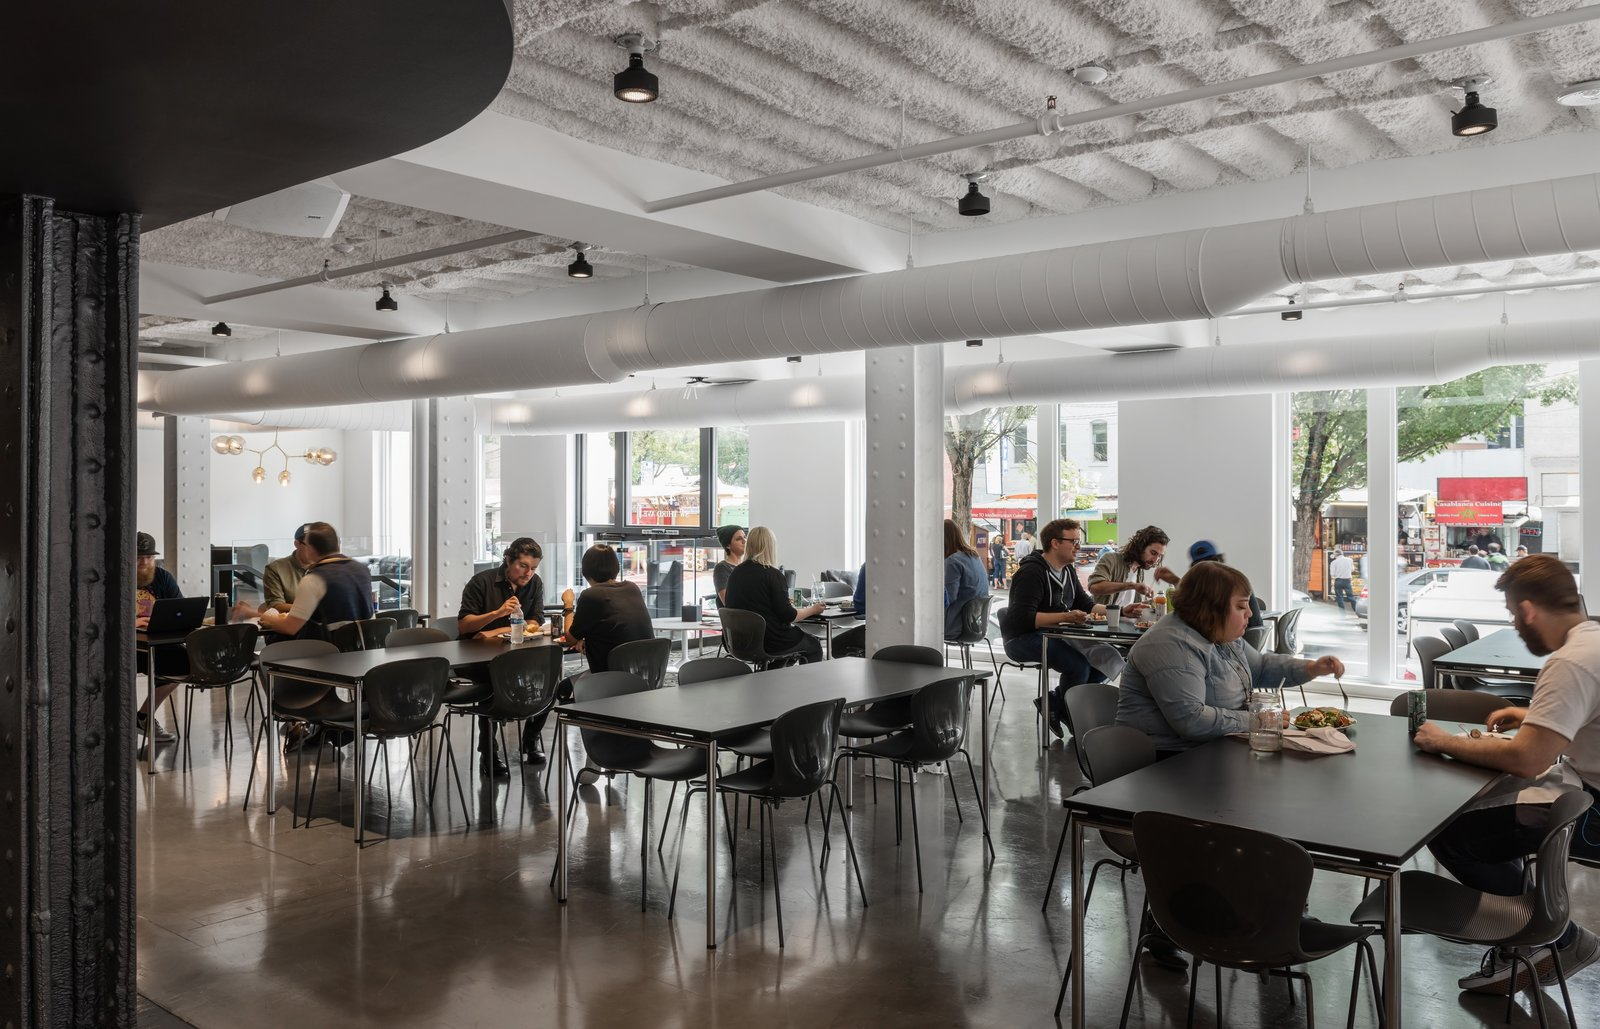 Employees eat at tables in a large entry space with plenty of windows and natural light.  Photo 9 of 12 in Step Inside Squarespace's Minimalist Portland Office